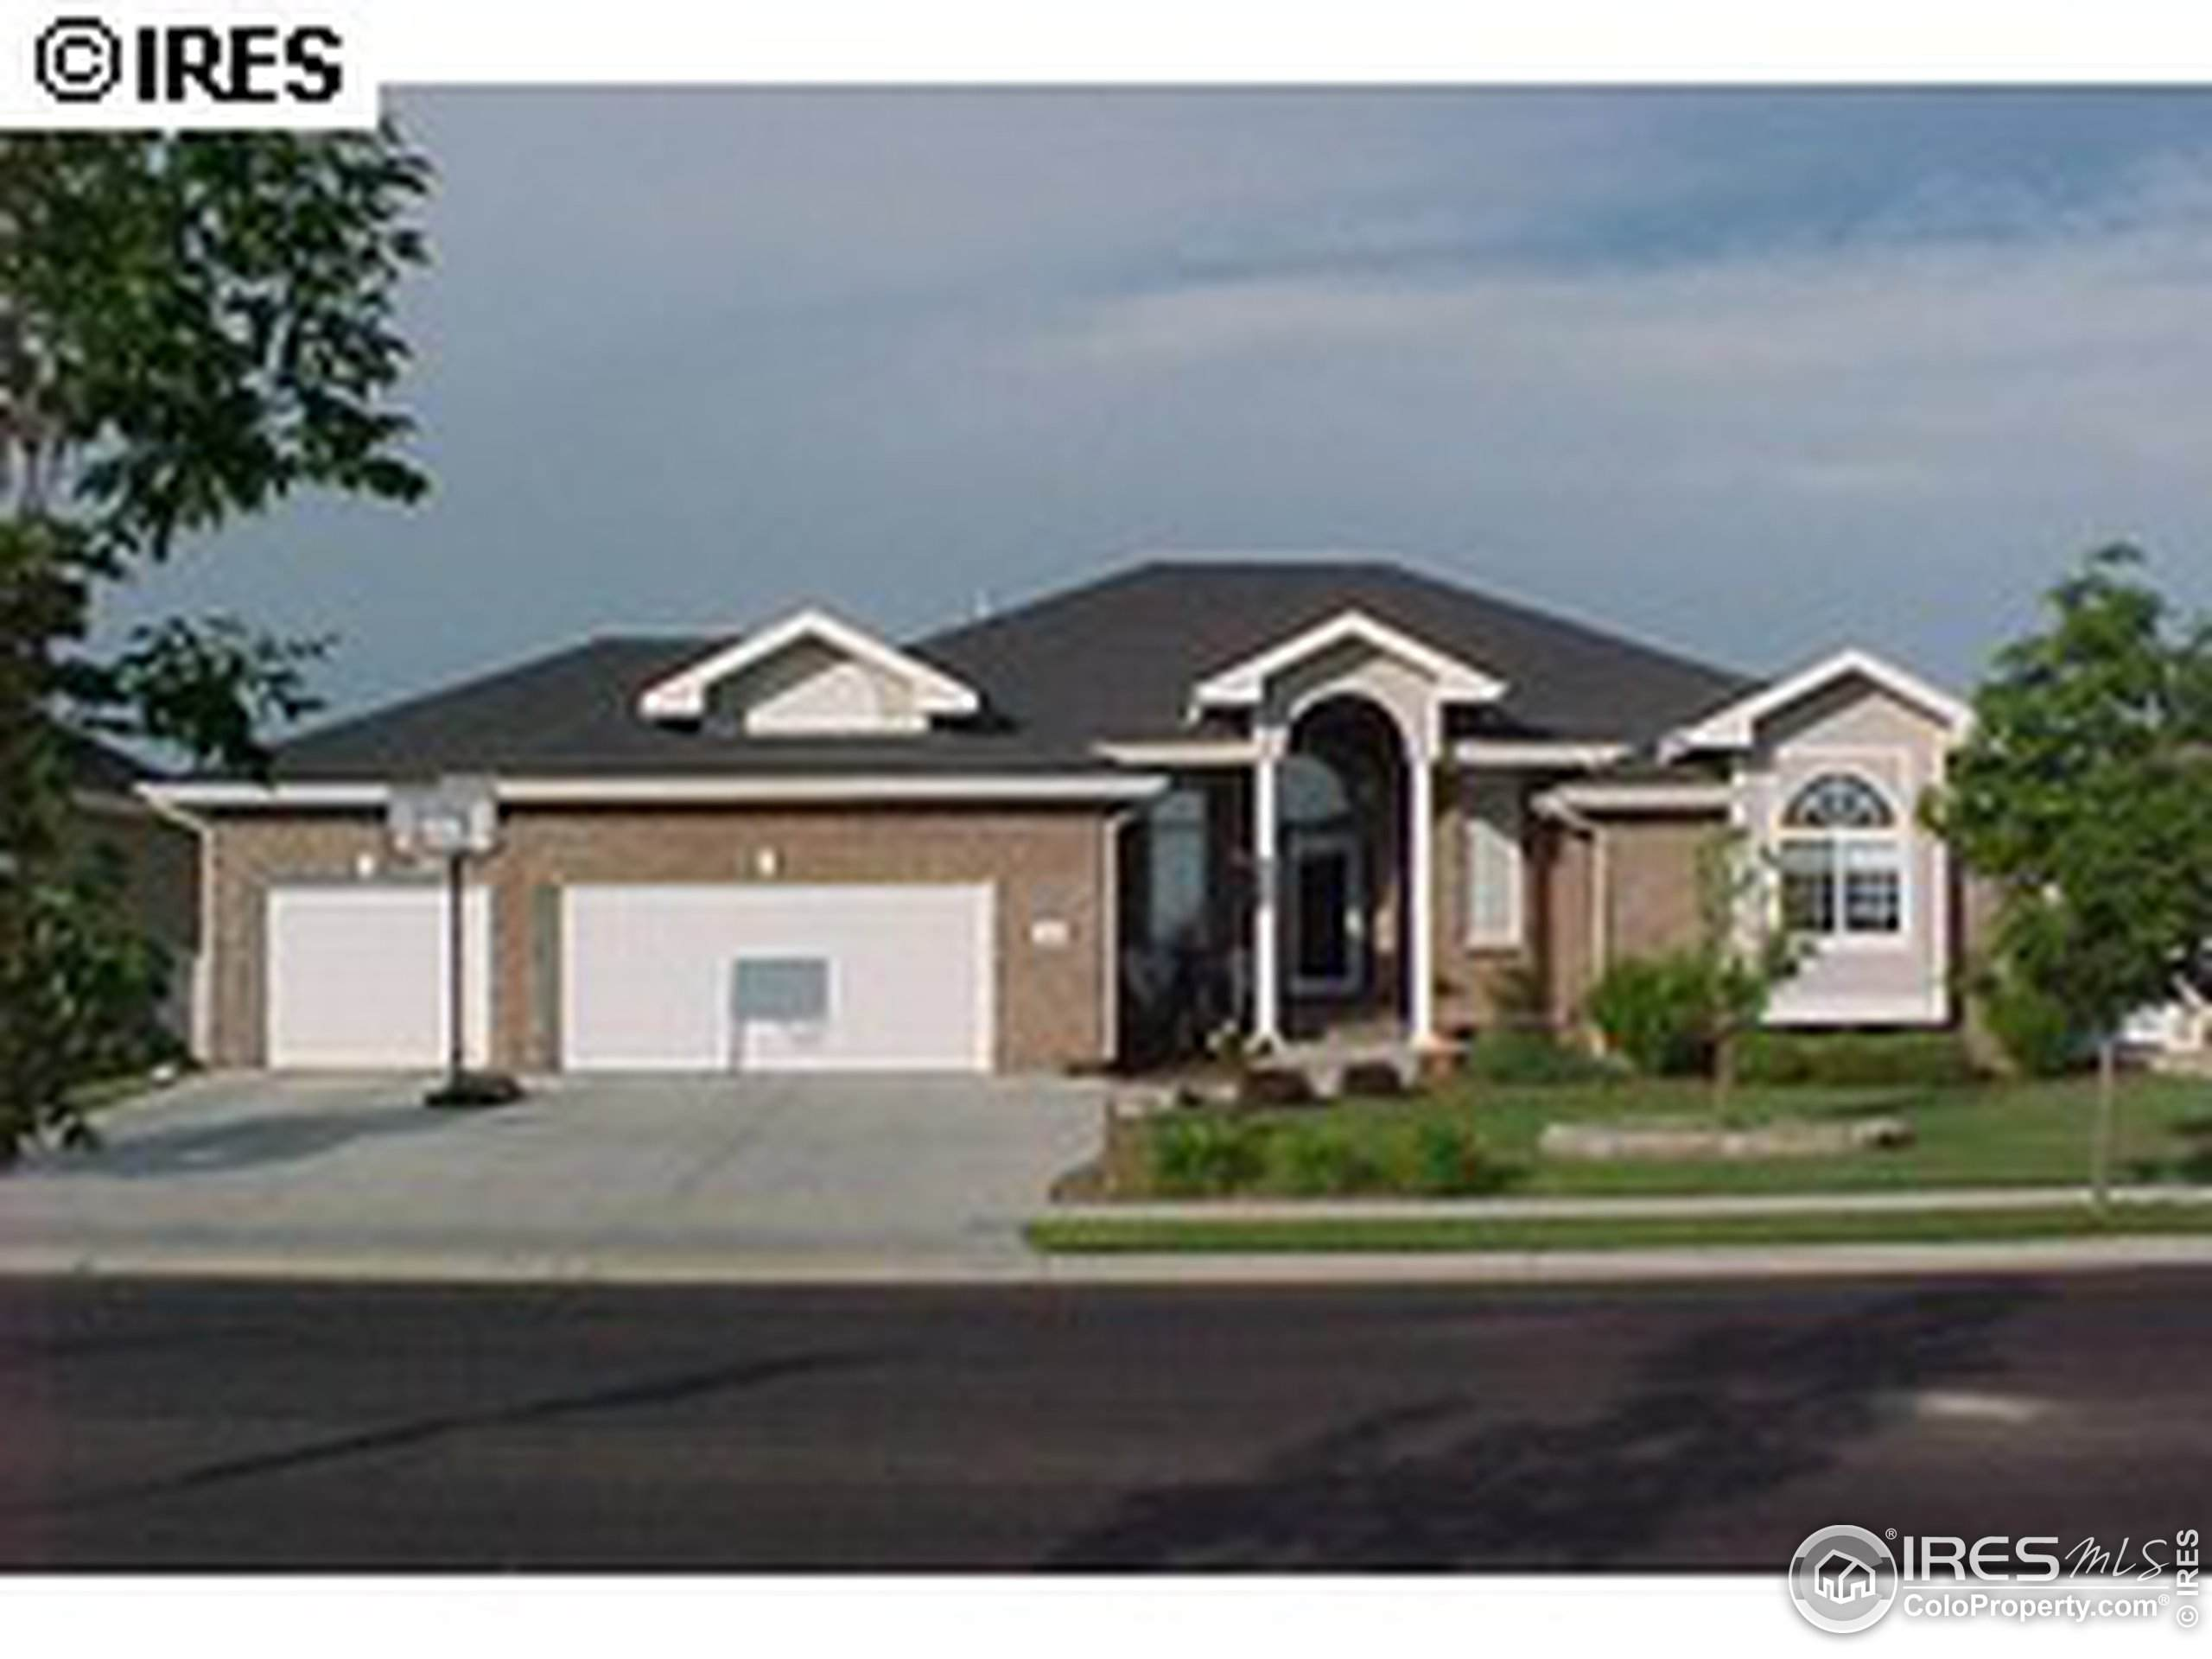 3790 Jefferson Dr, Loveland, CO 80538 (MLS #917345) :: 8z Real Estate